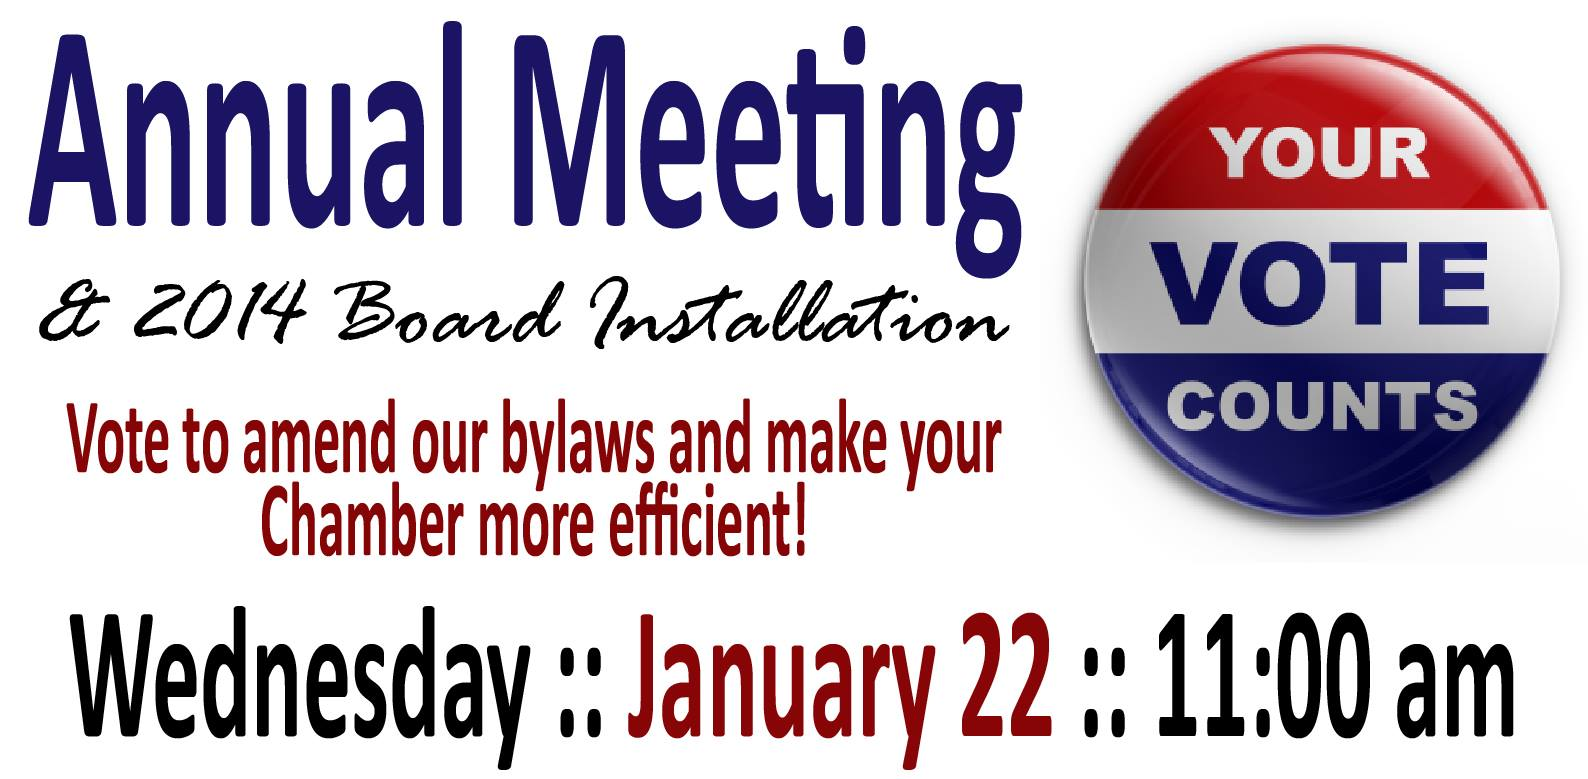 annual-meeting-vote